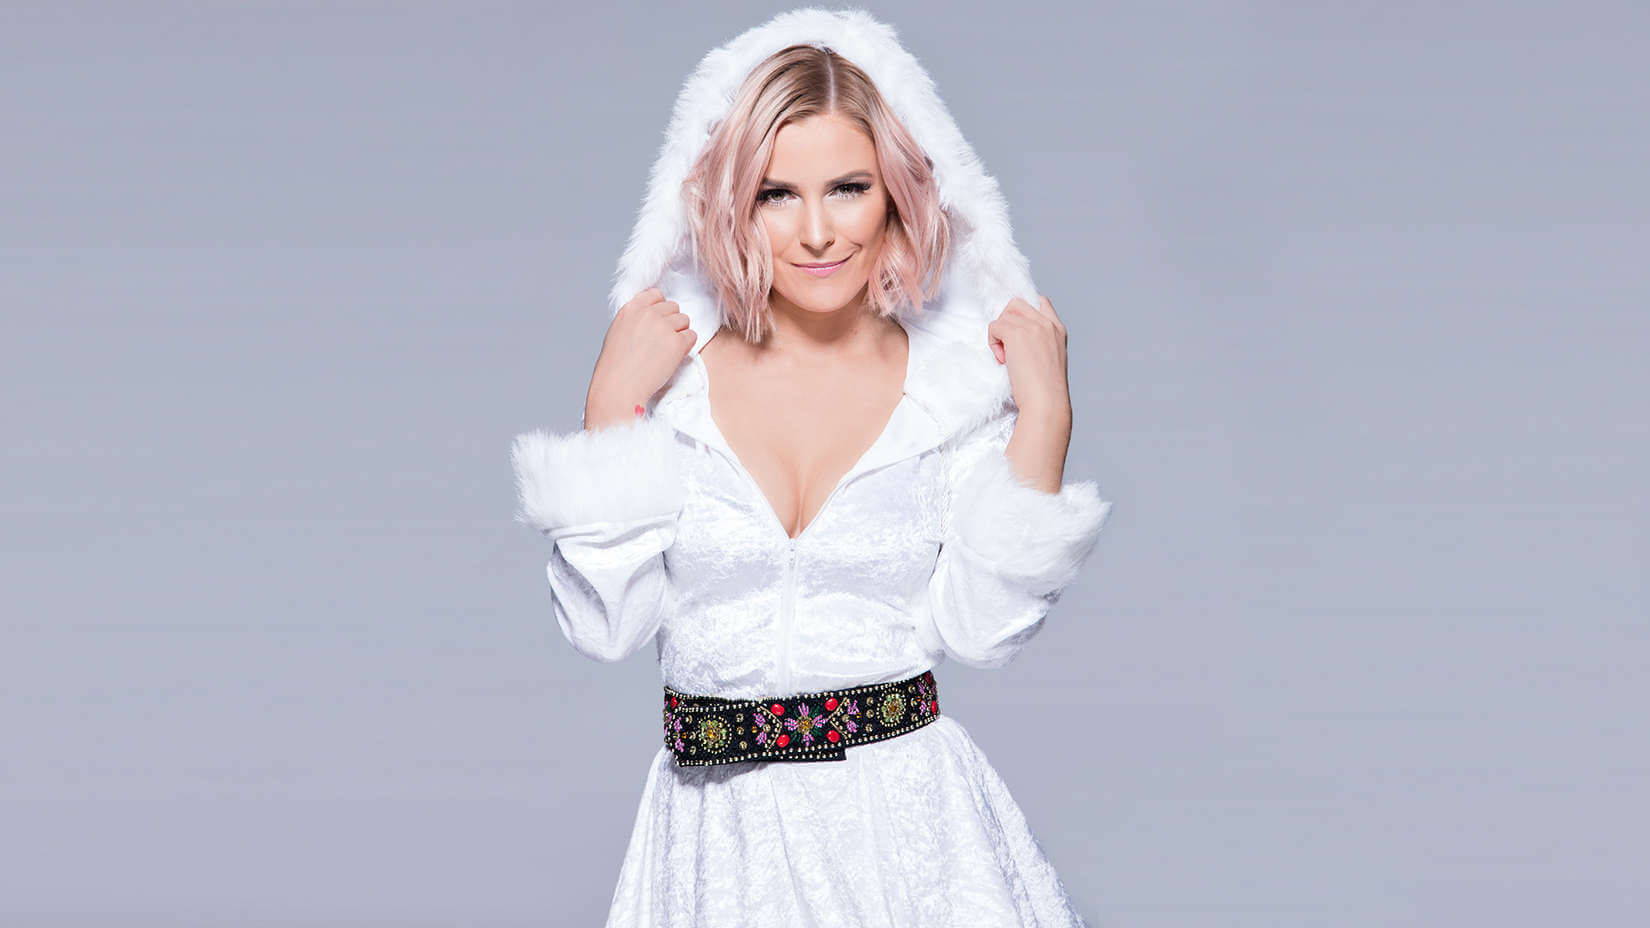 Renee Young hot pic (2)